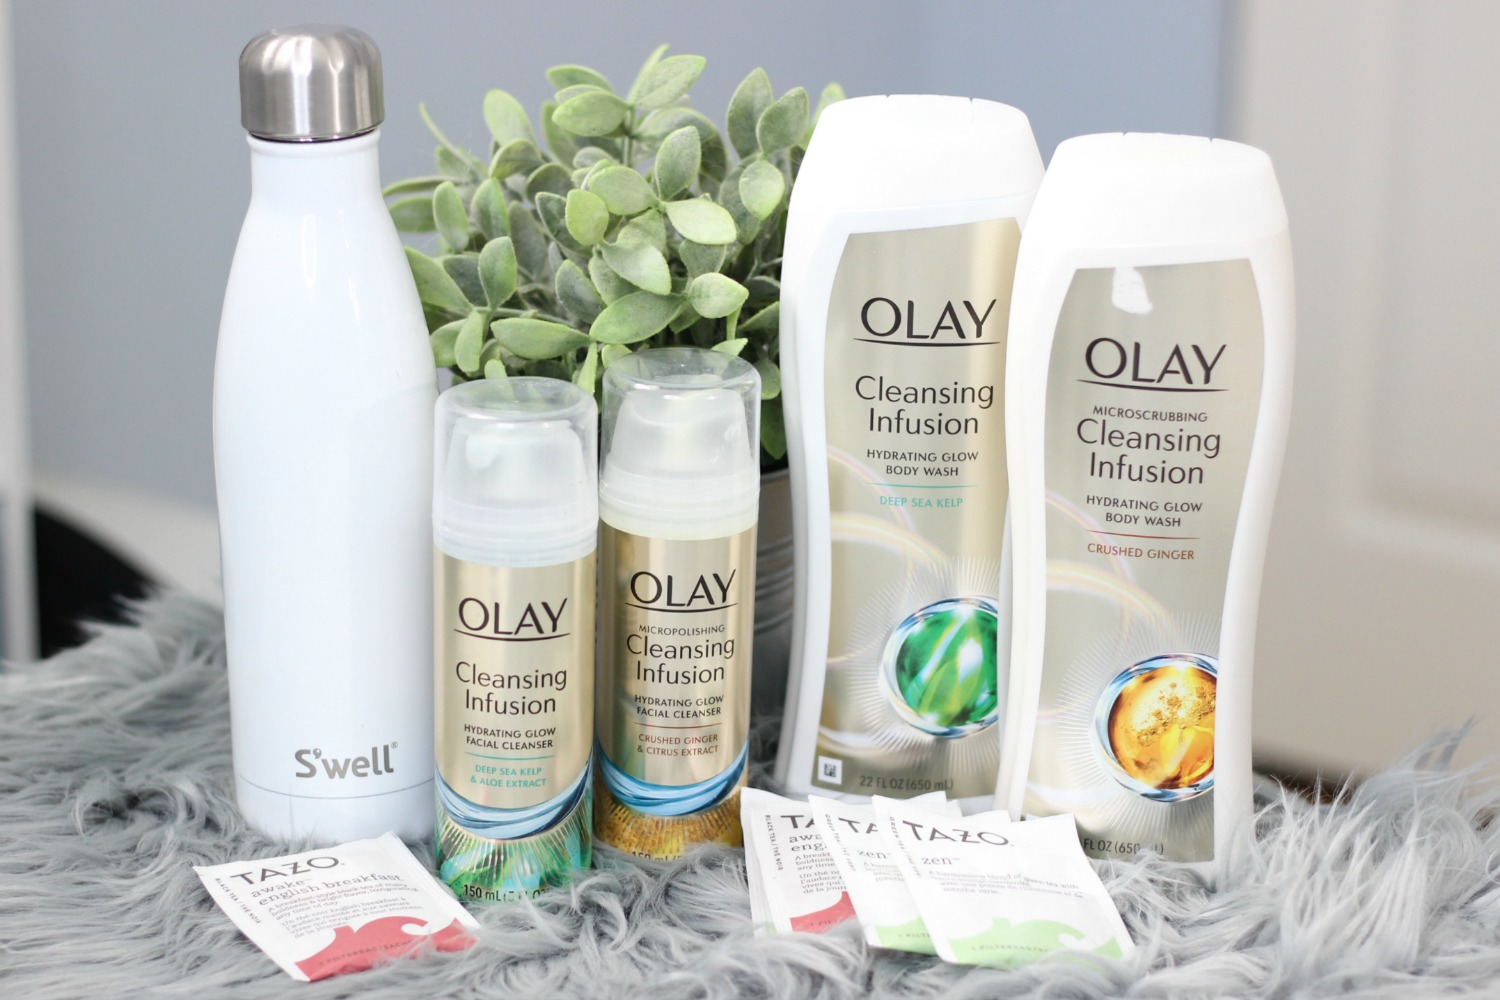 Time To Glow Up | New Beauty Habits For 2018 With Olay hero